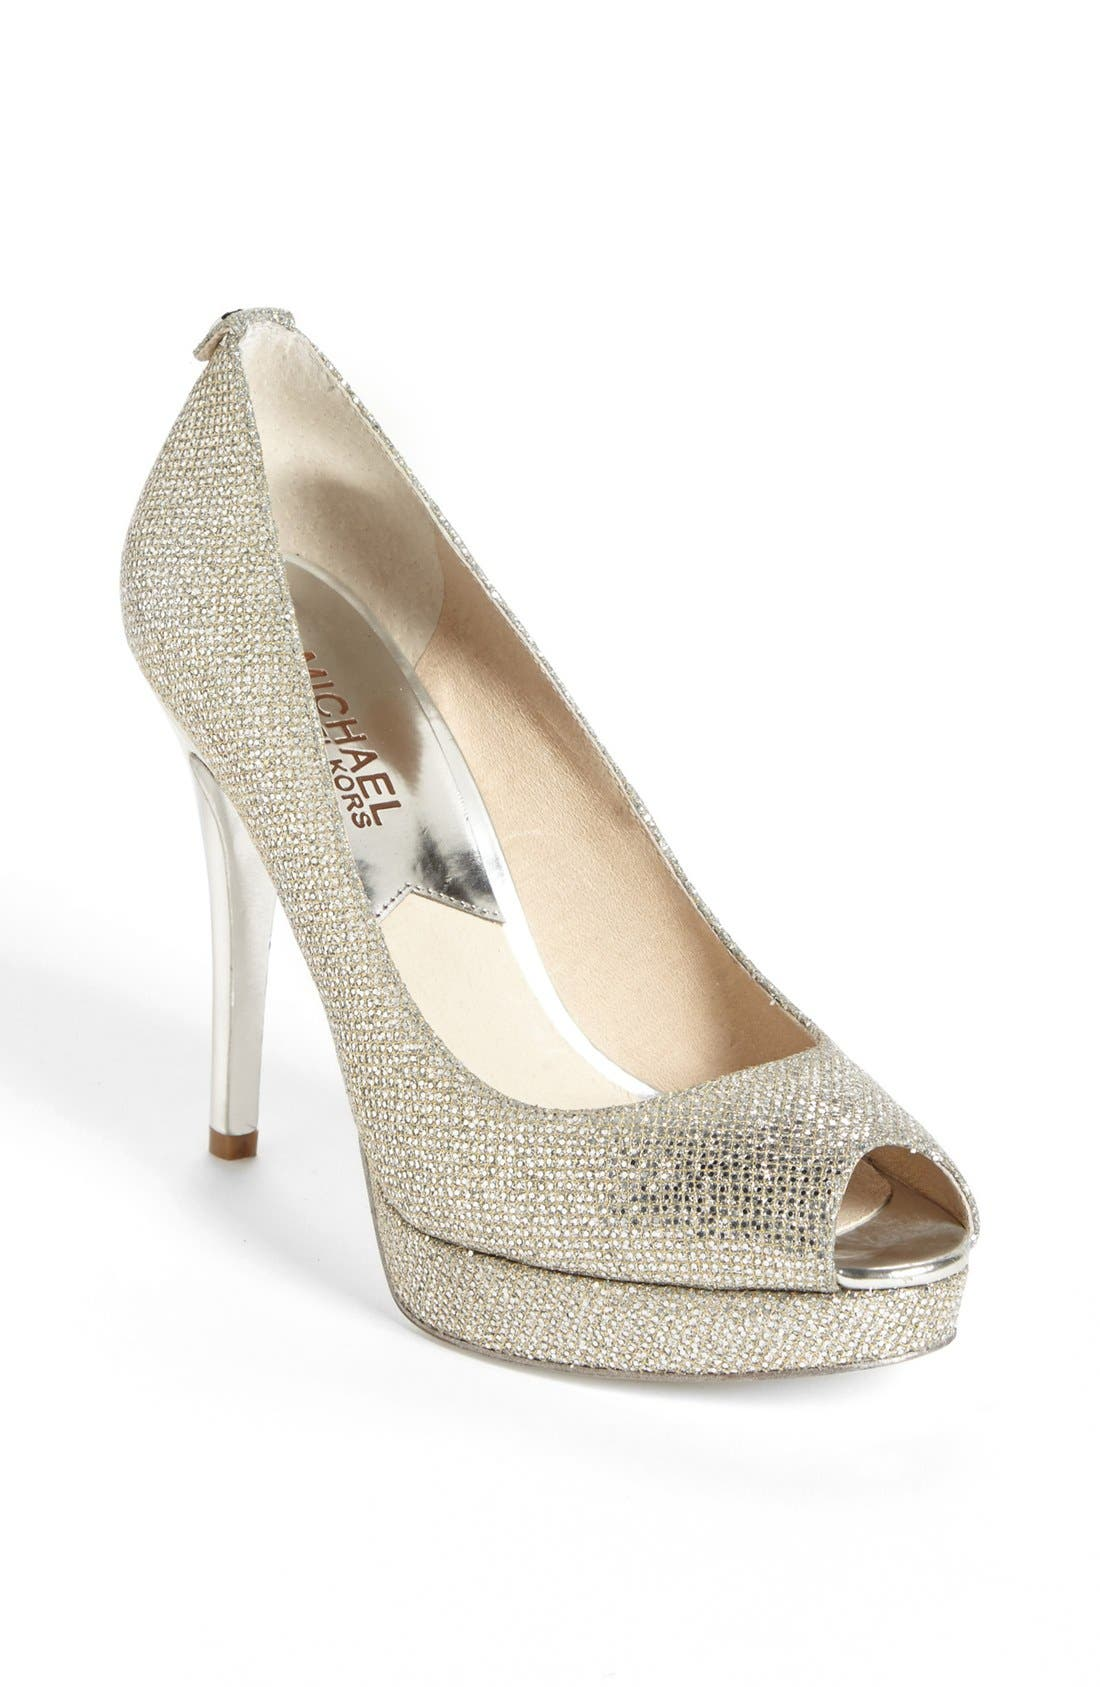 'York' Platform Pump,                         Main,                         color, Silver